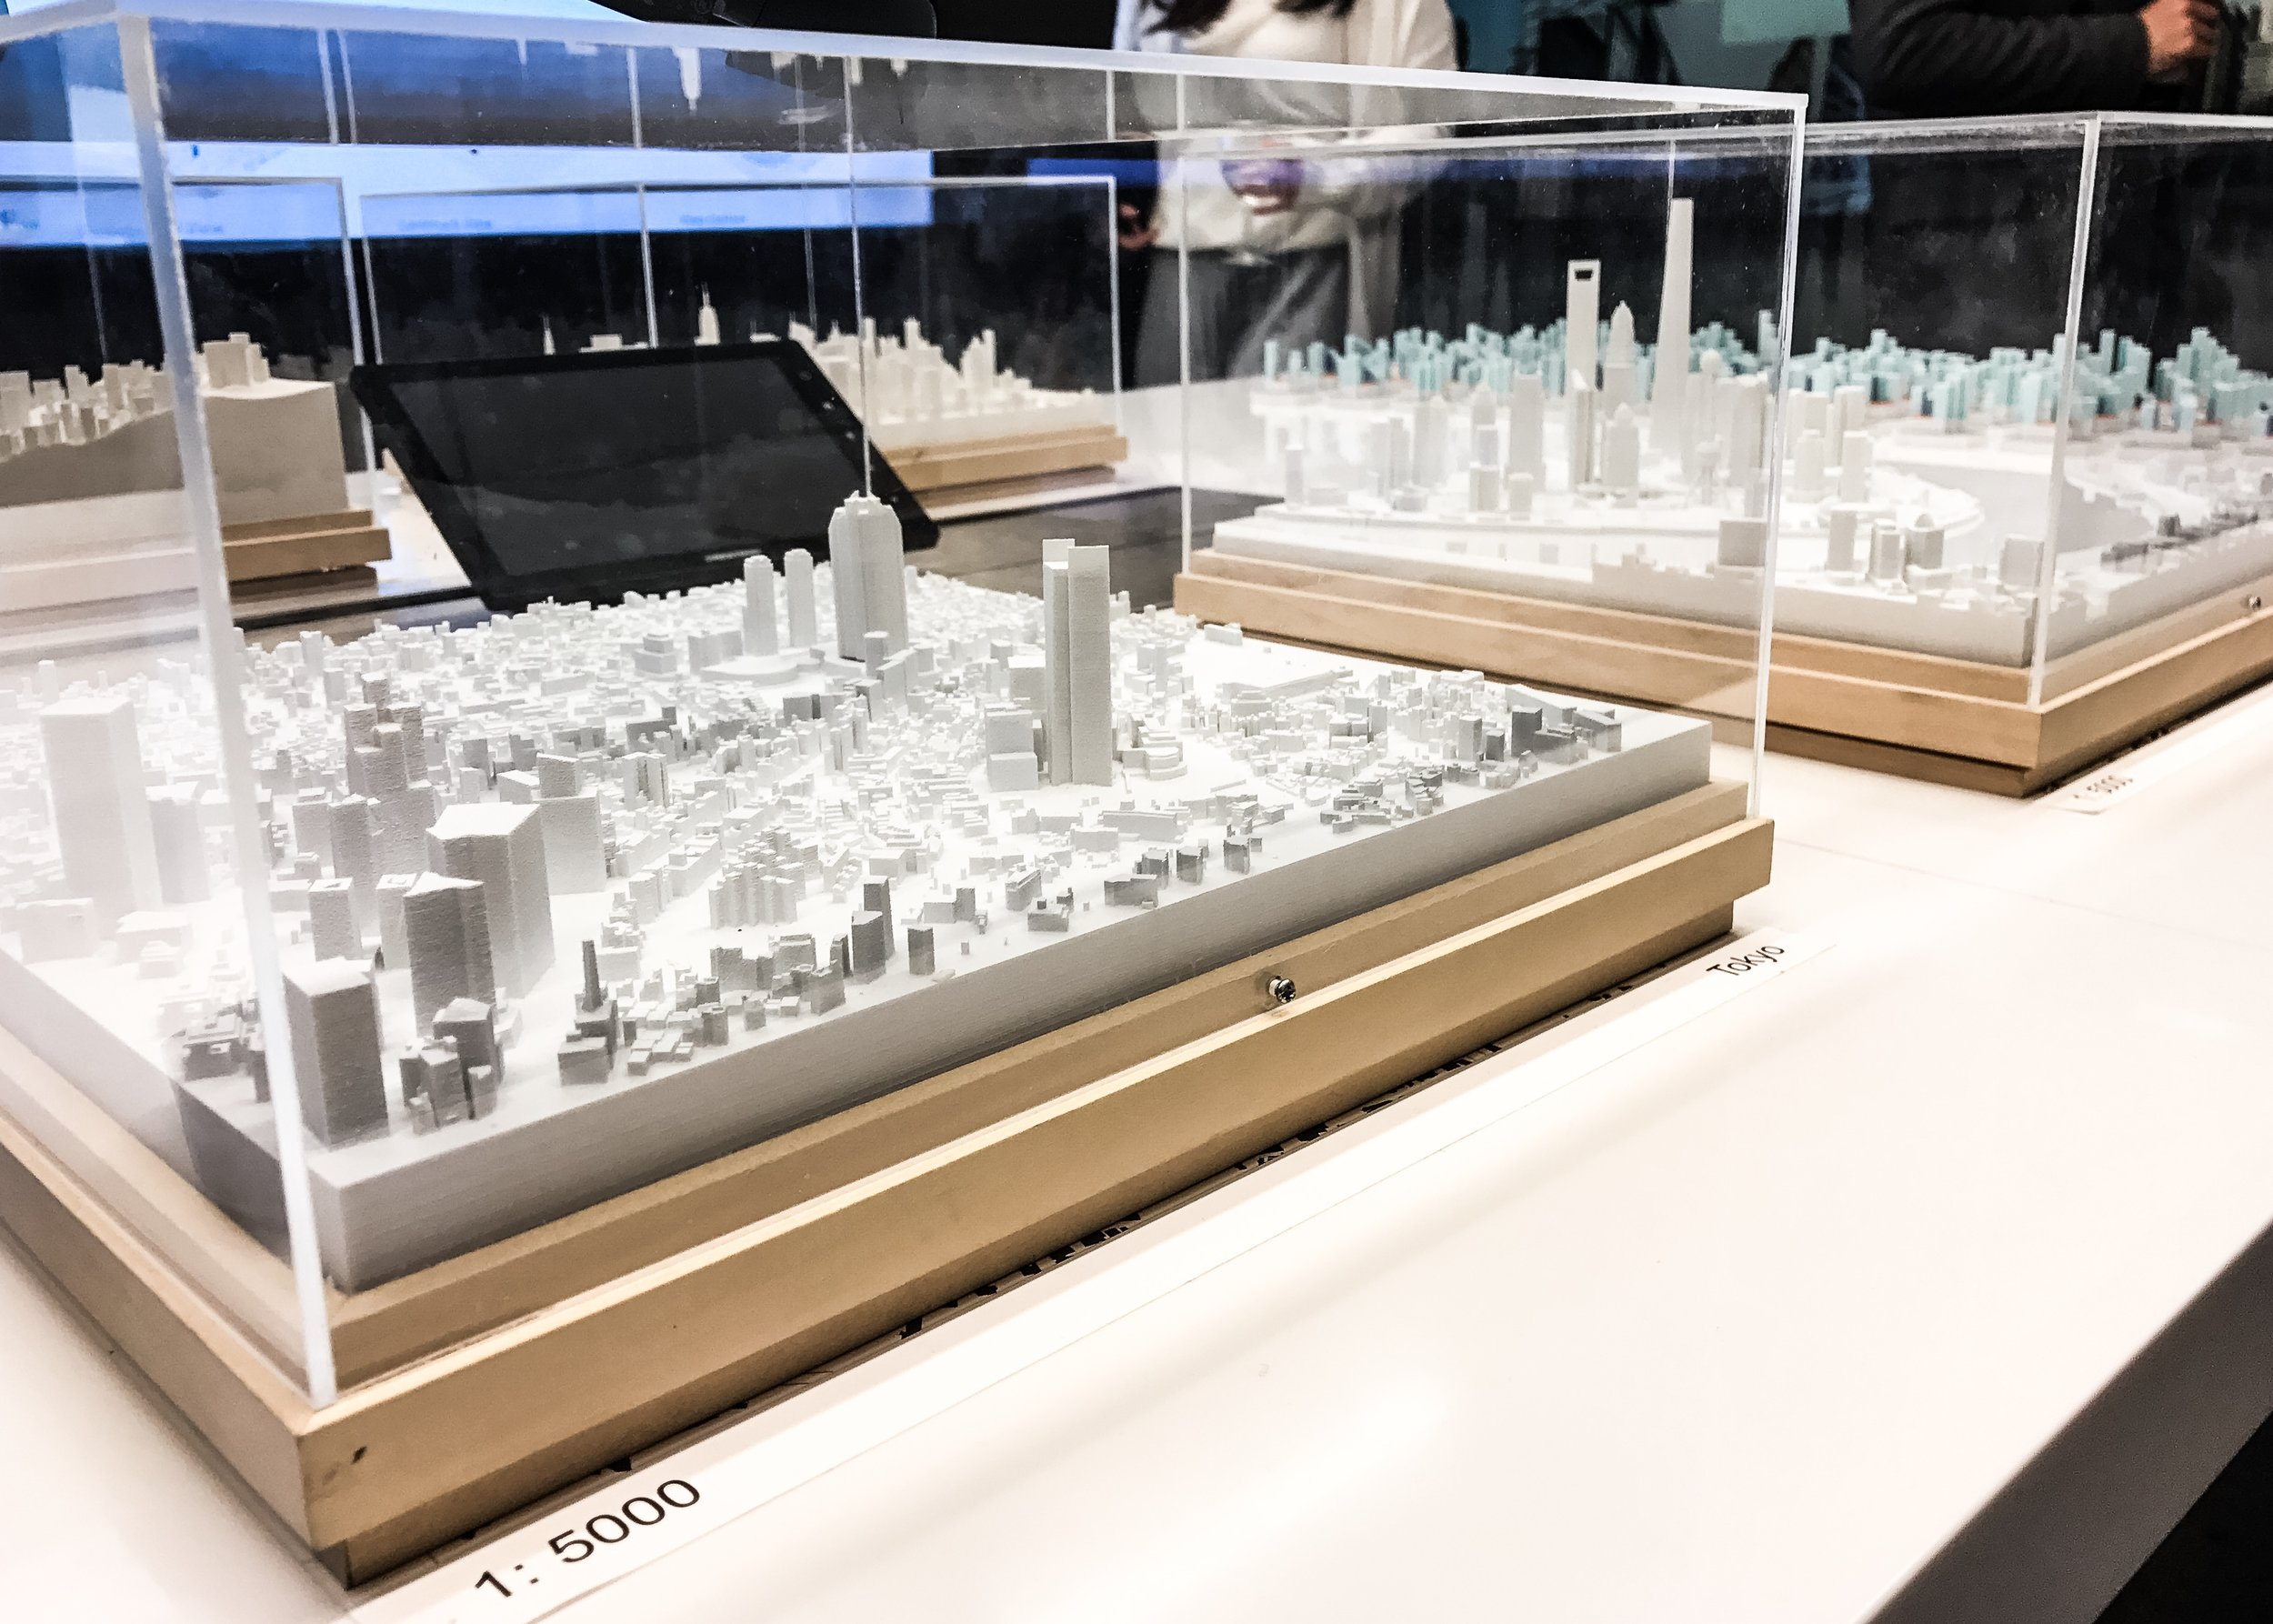 Skyline 1:5000 model study of four different cities.